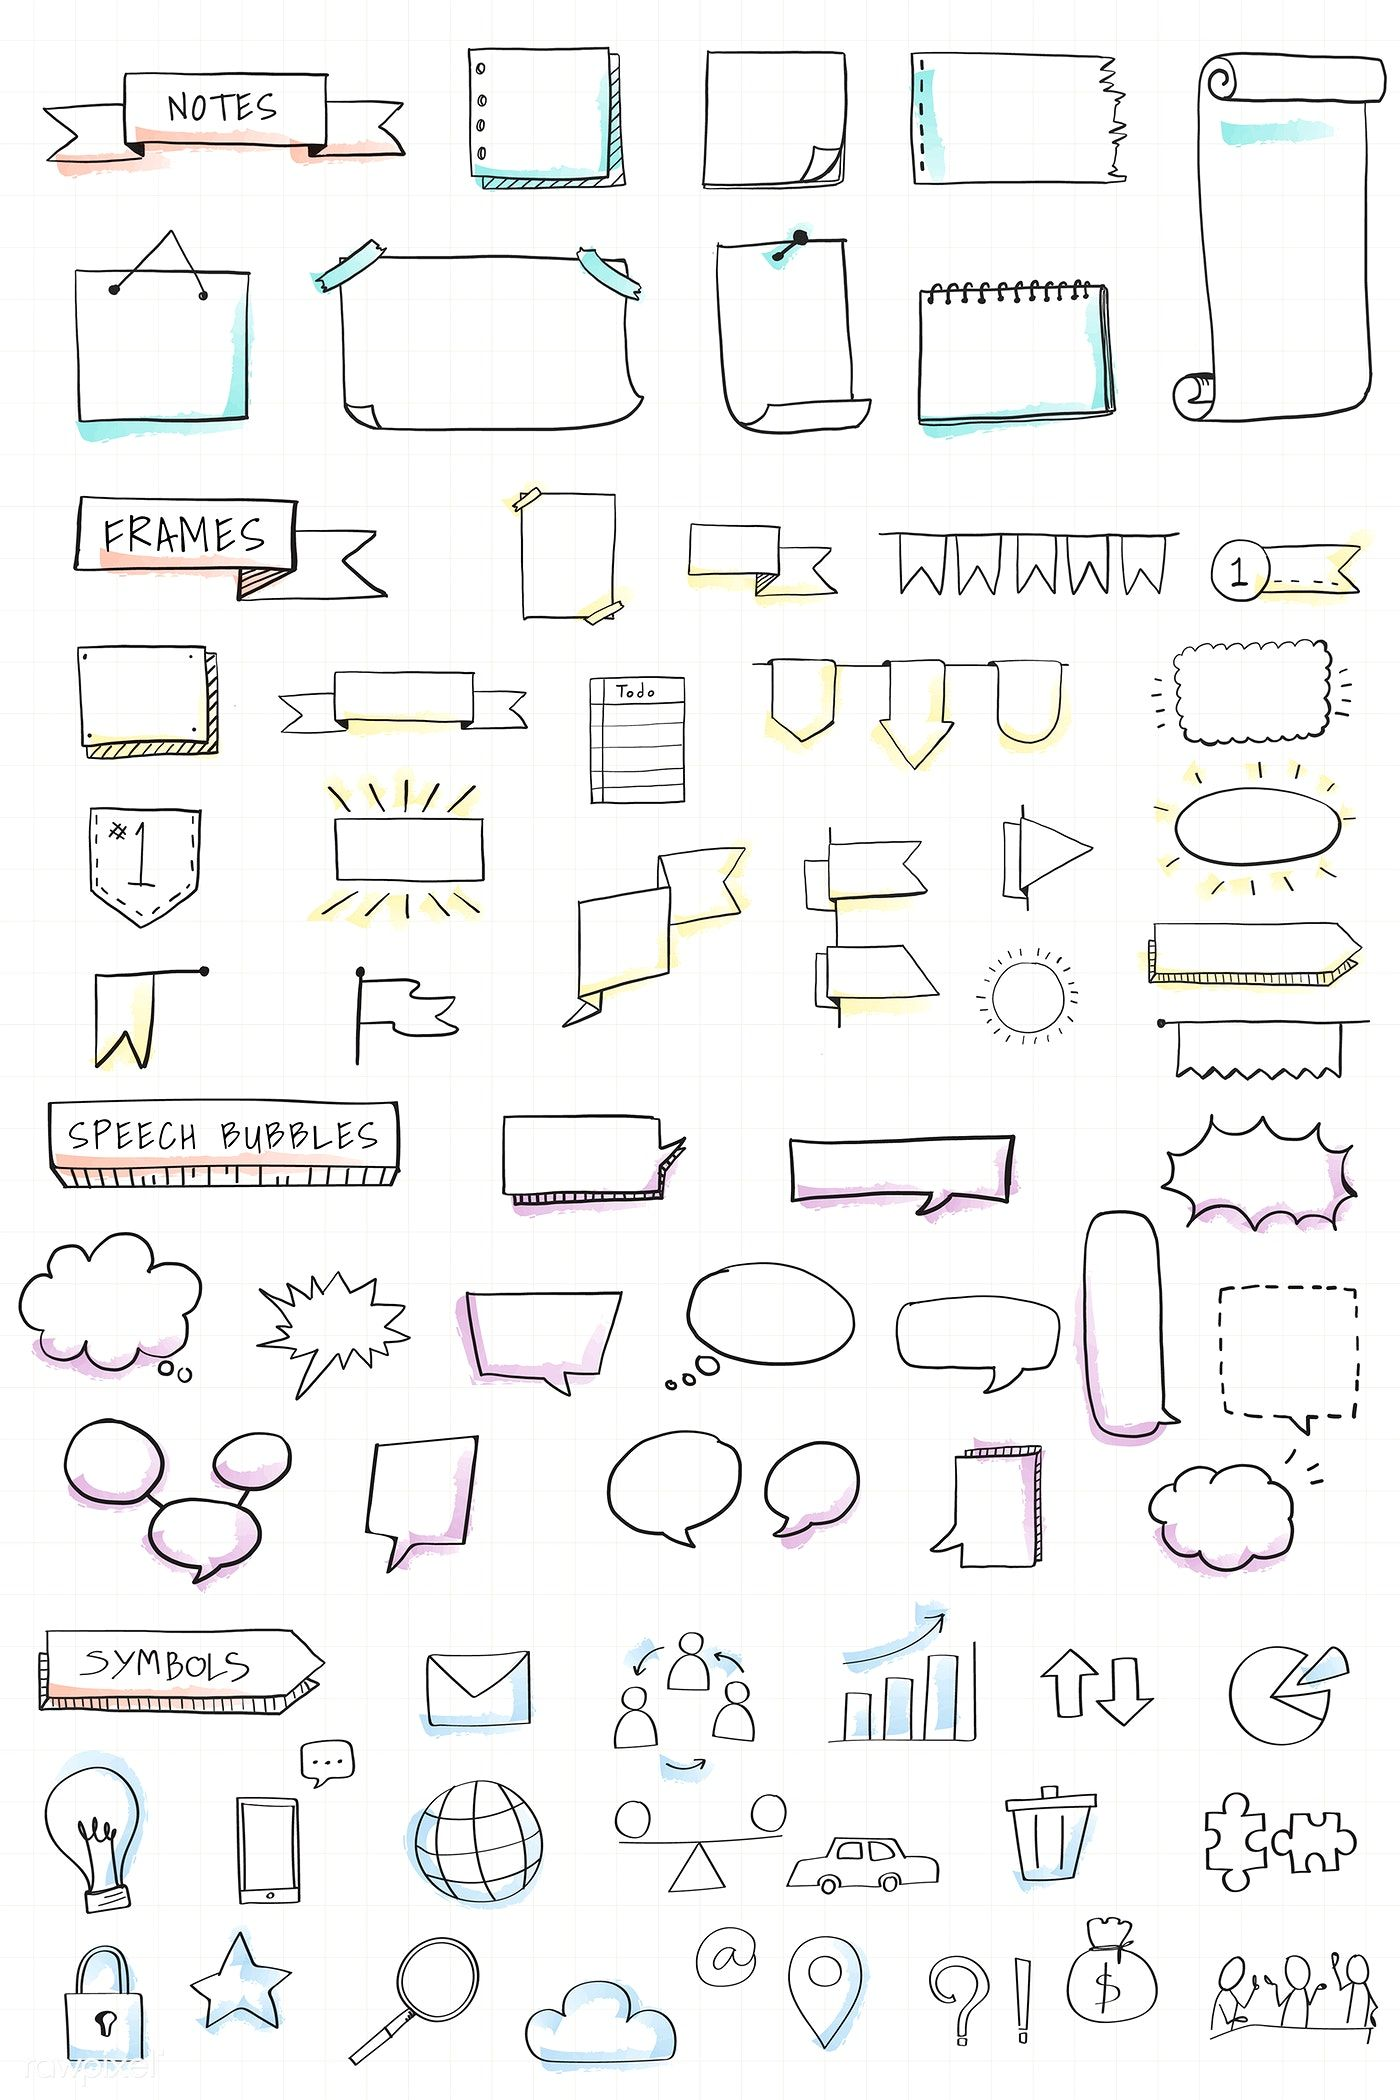 Download premium vector of Hand drawn visual thinking elements vector set #bulletjournalideas